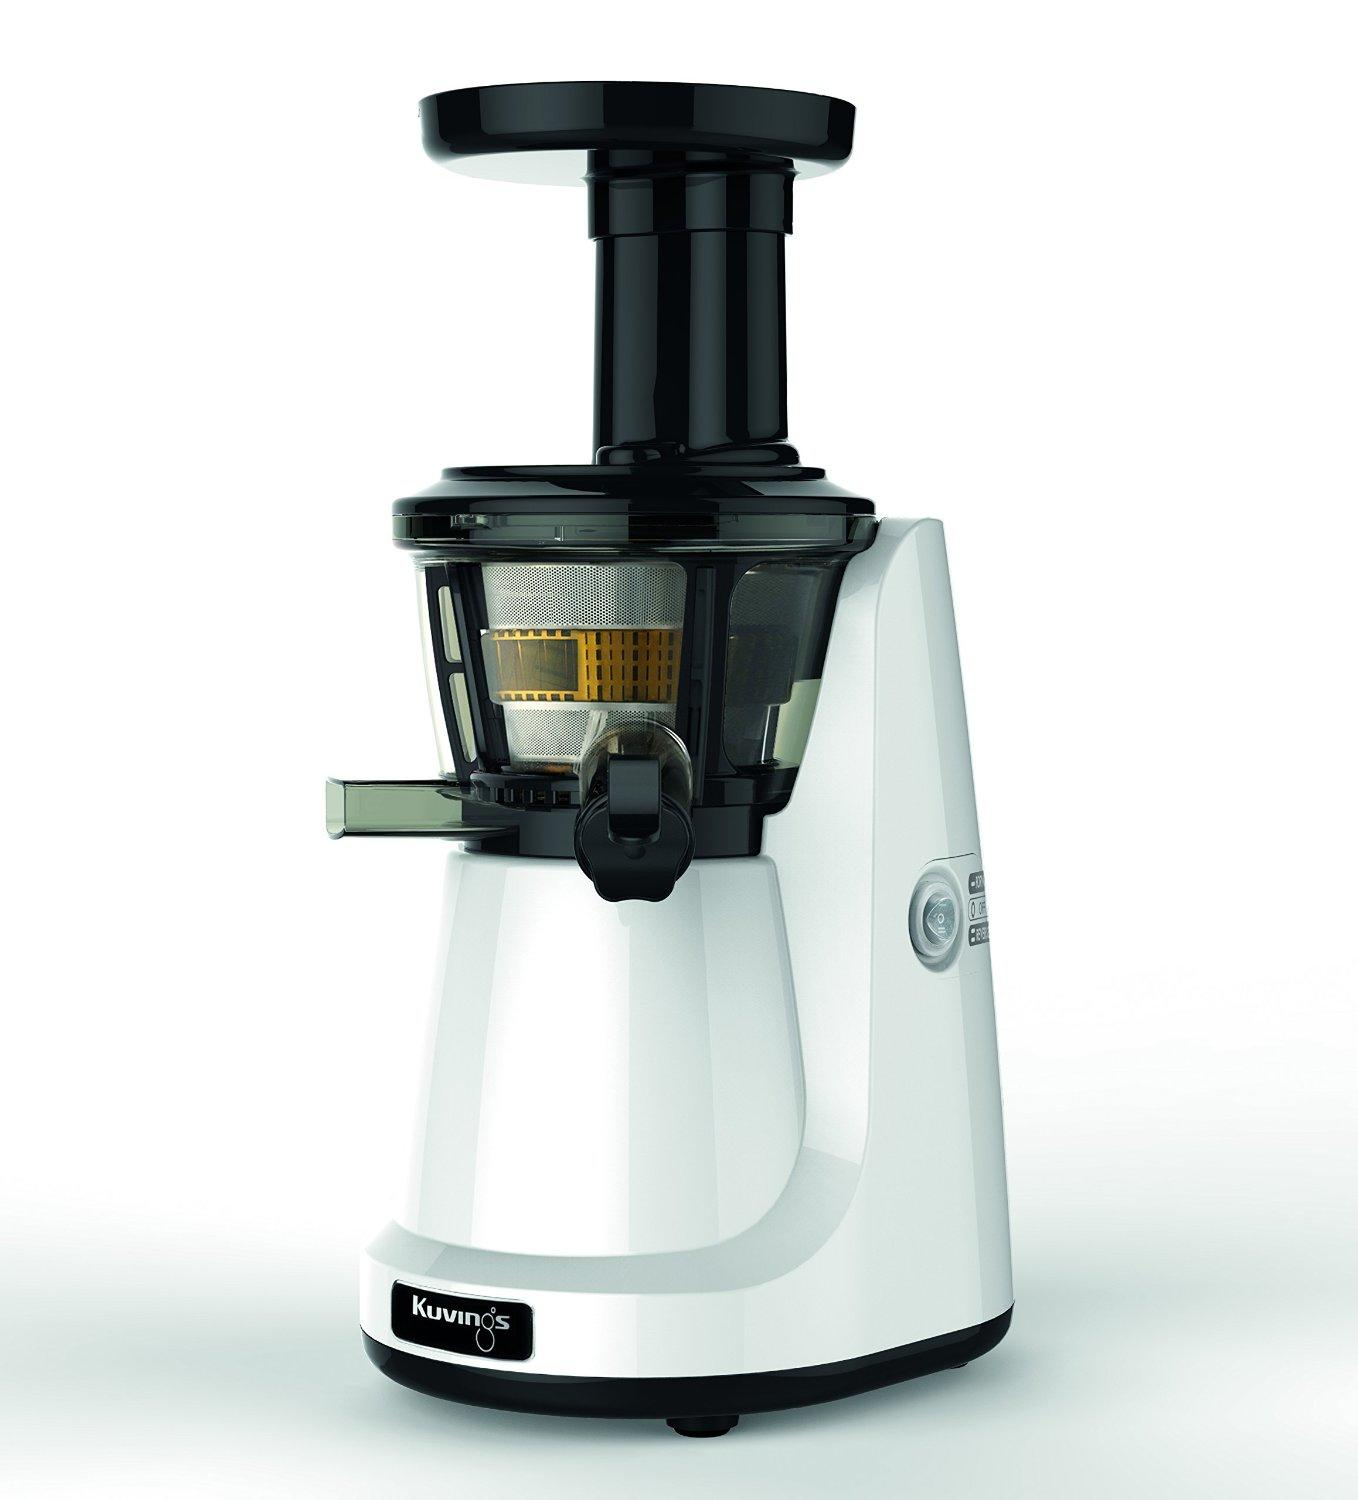 ESTRATTORE DI SUCCO KUvINGS SILENT NS321 KUvINGS Estrattore di succo NS321 Con KUvINGS SLOW ...